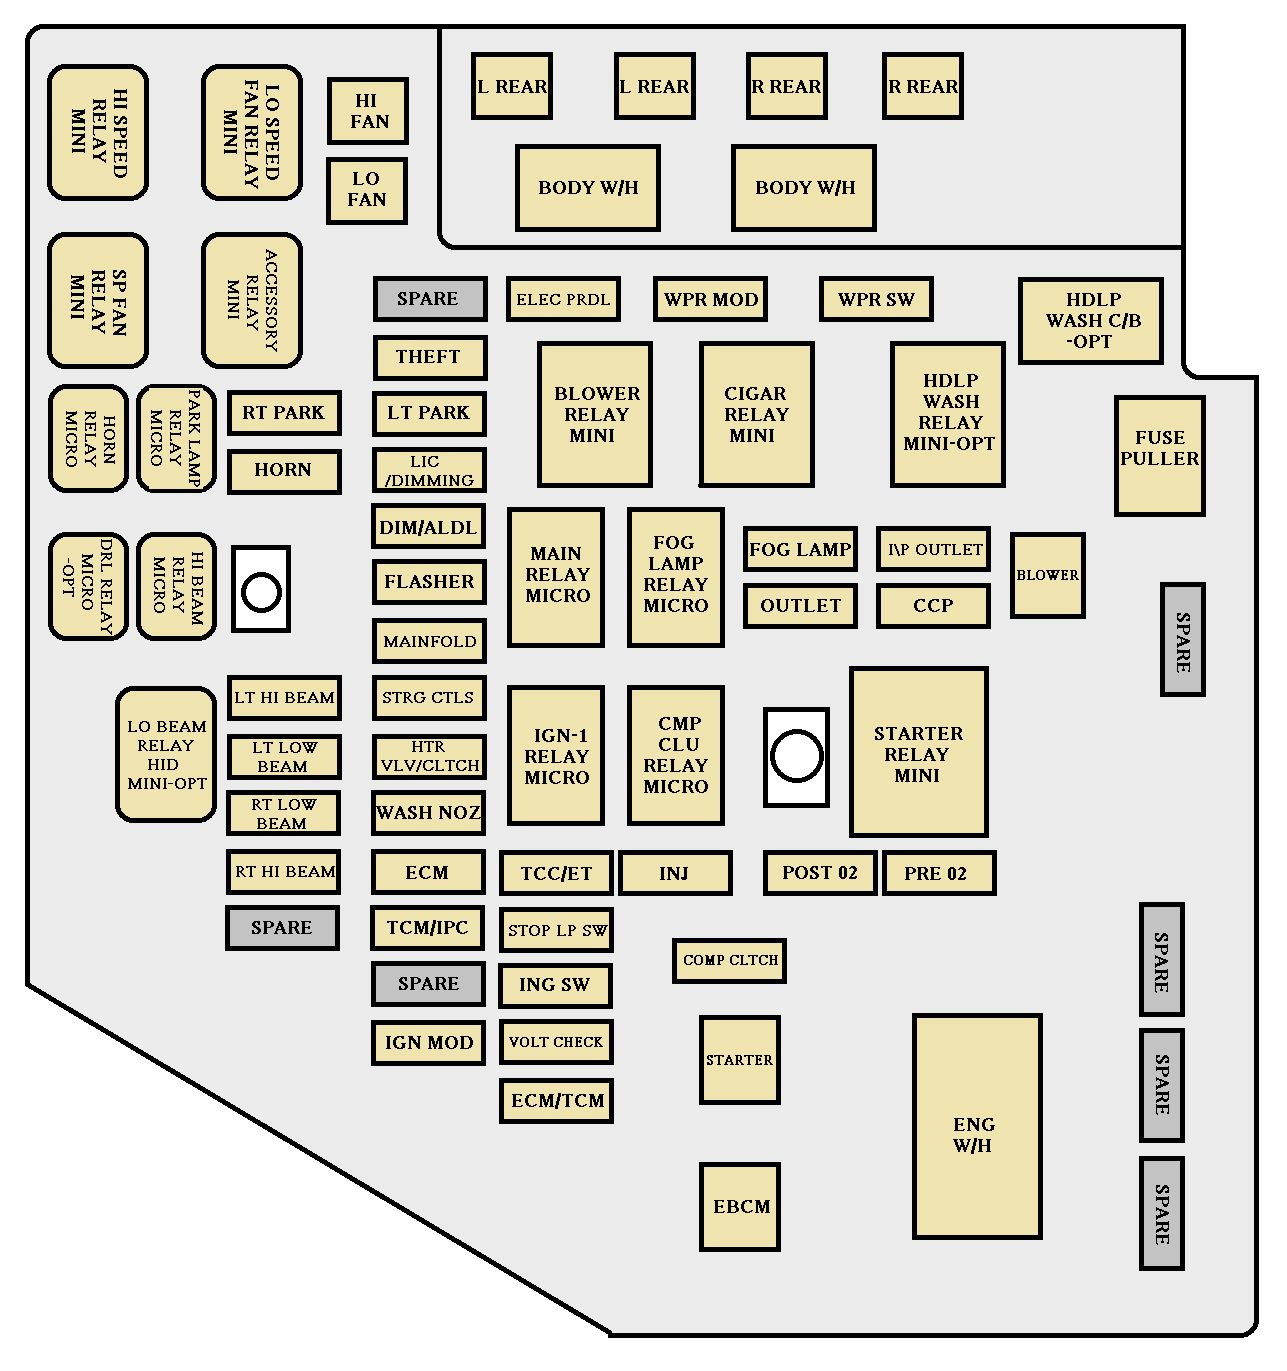 07 Cts Fuse Diagram - Wiring Diagram Page